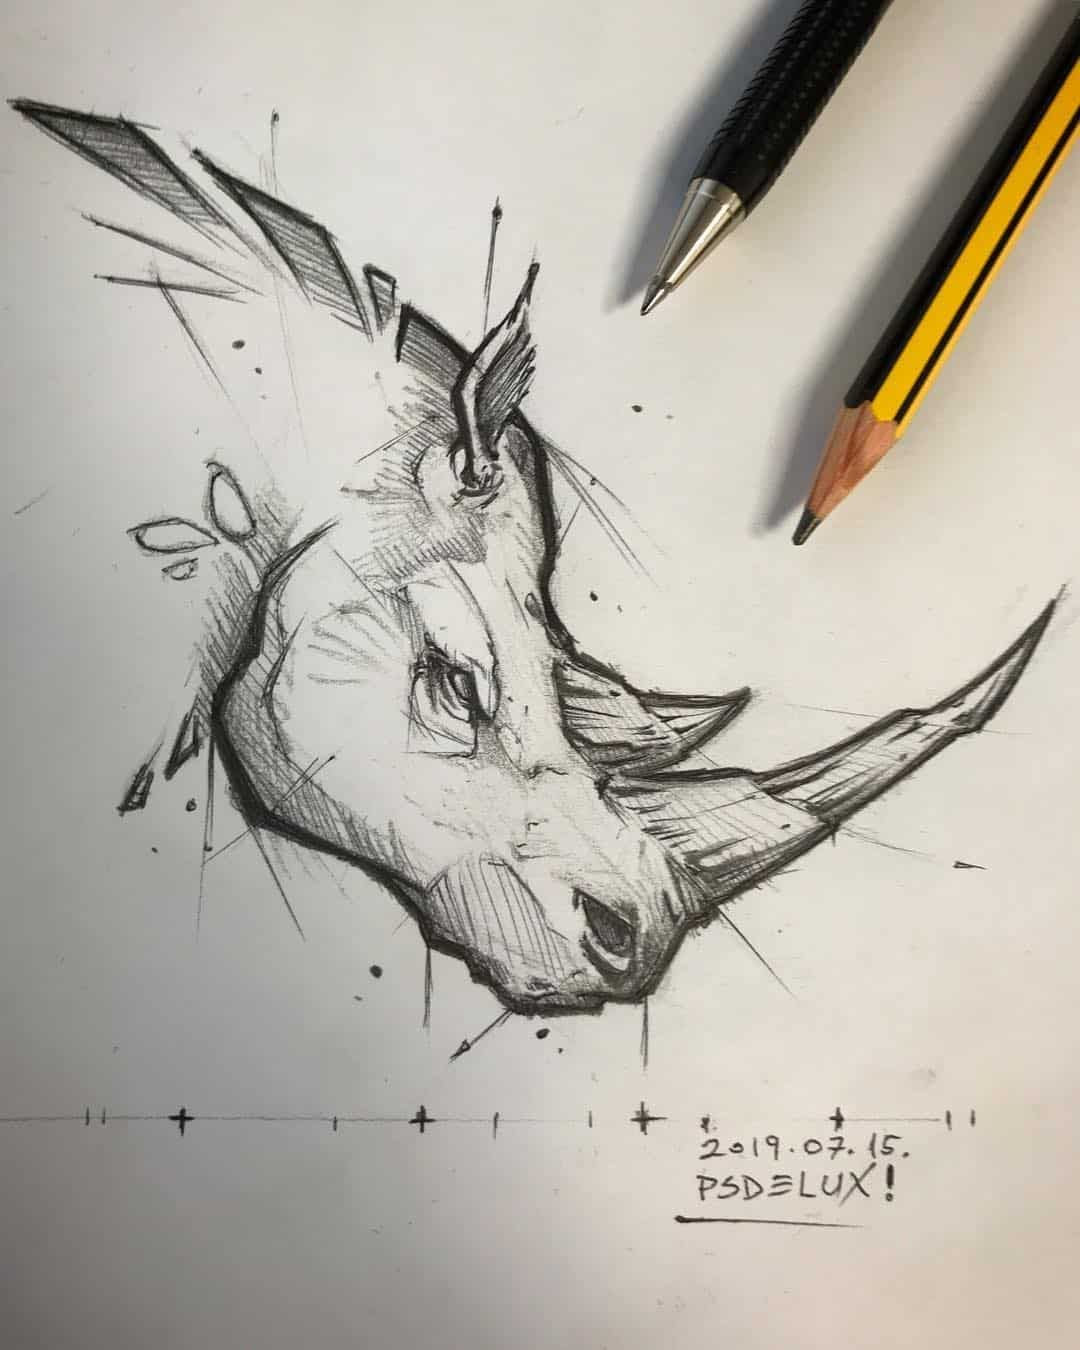 Pencil Sketch Artist Psdelux | Animal drawings | ARTWOONZ